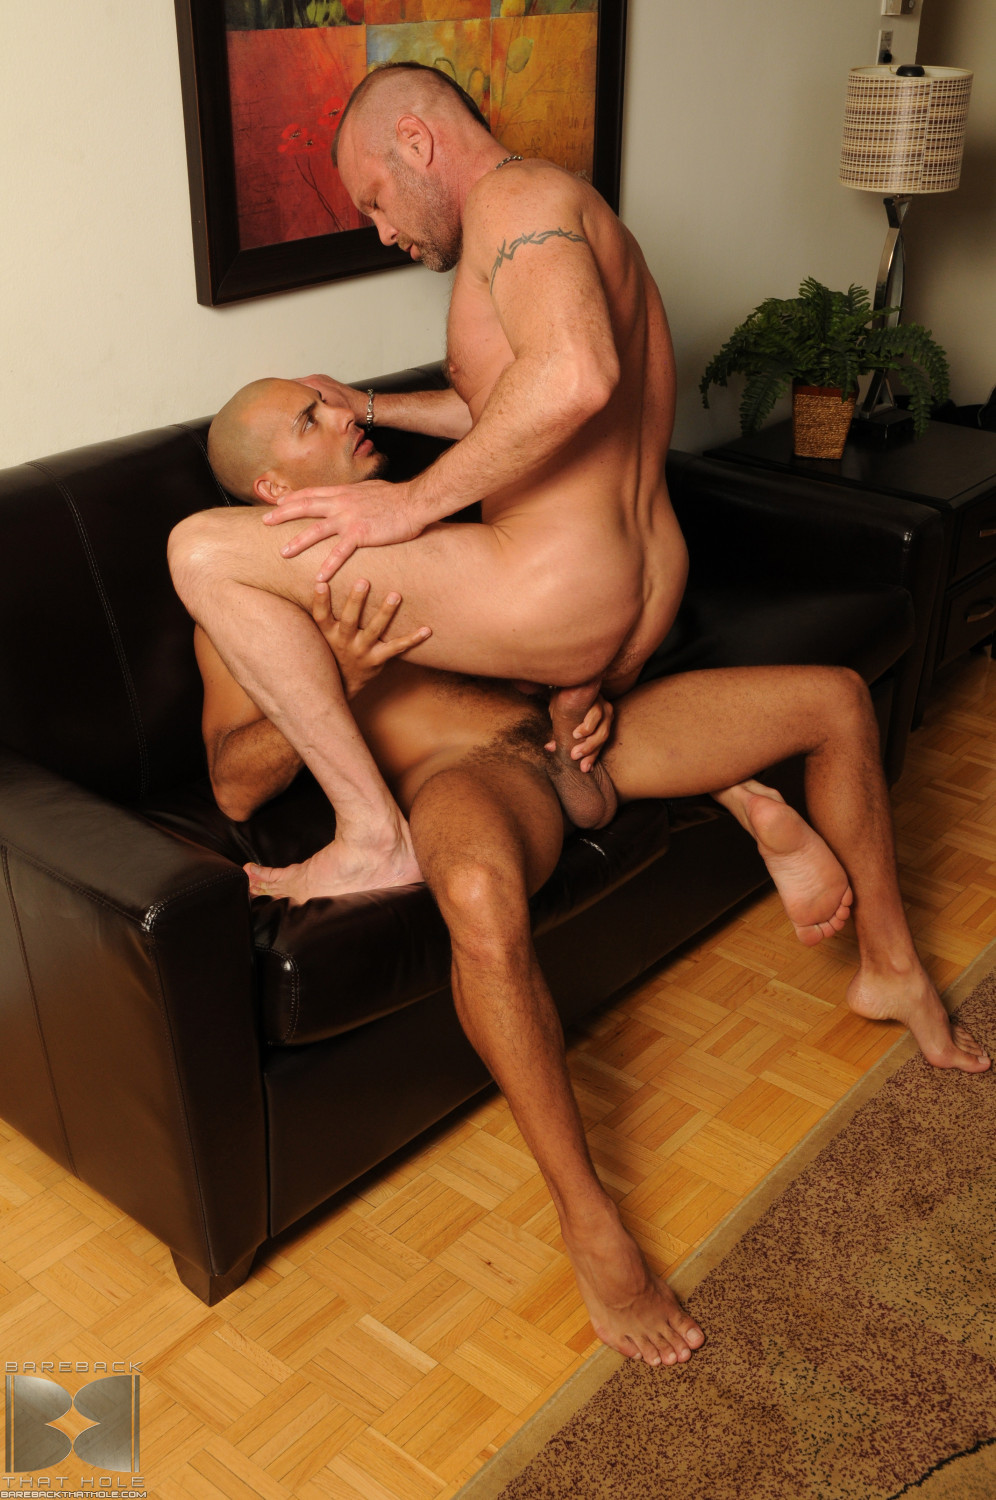 Bareback-That-Hole-Chad-Brock-and-Antonio-Biaggi-06 Bareback That Hole: Chad Brock and Antonio Biaggi